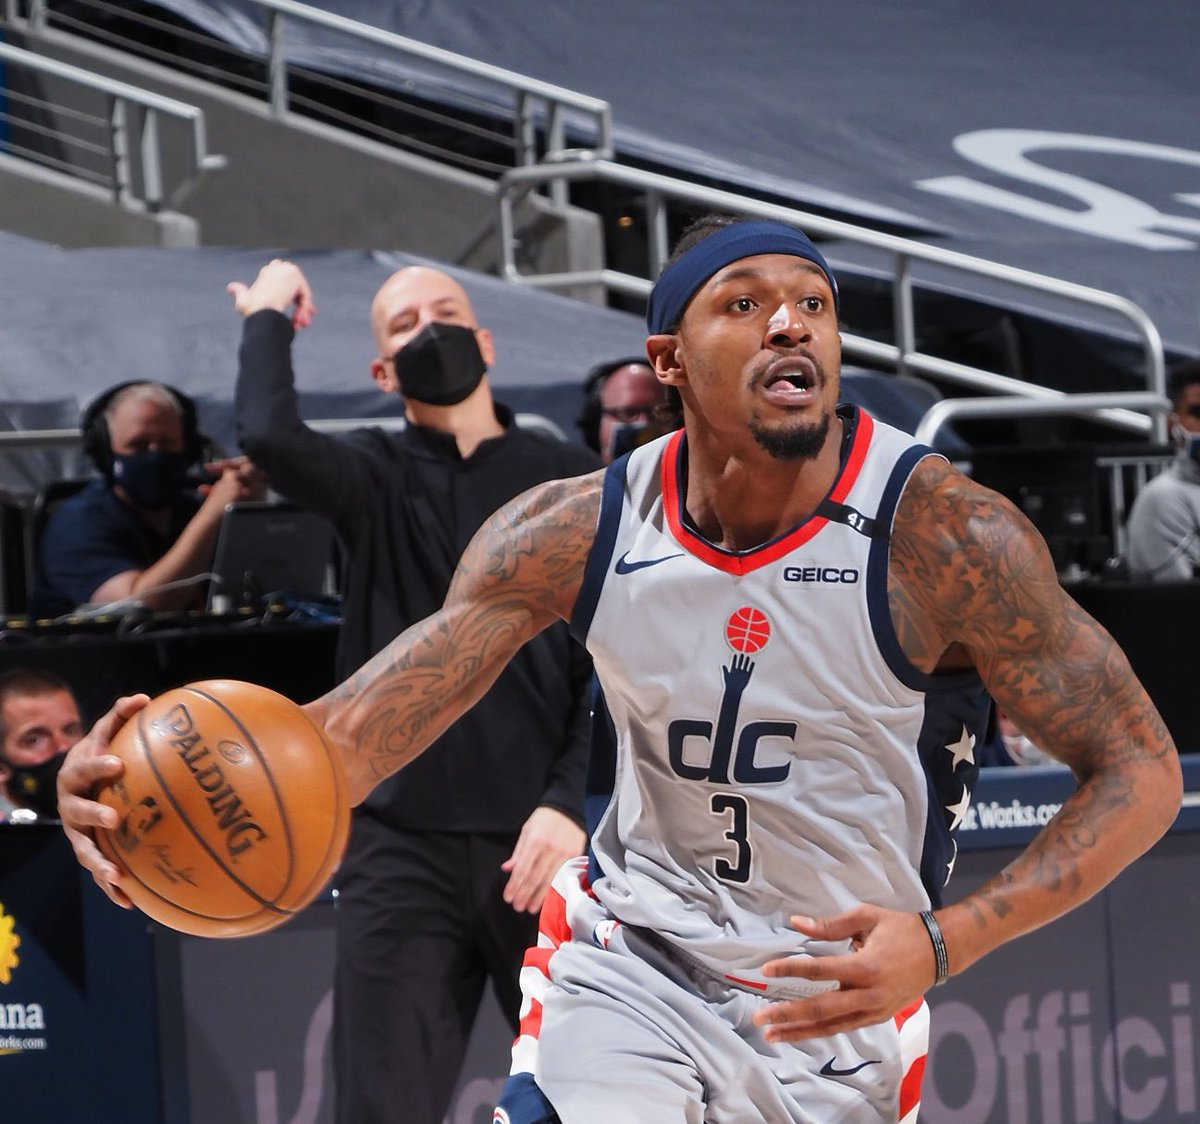 @TheNBACentral's photo on Beal